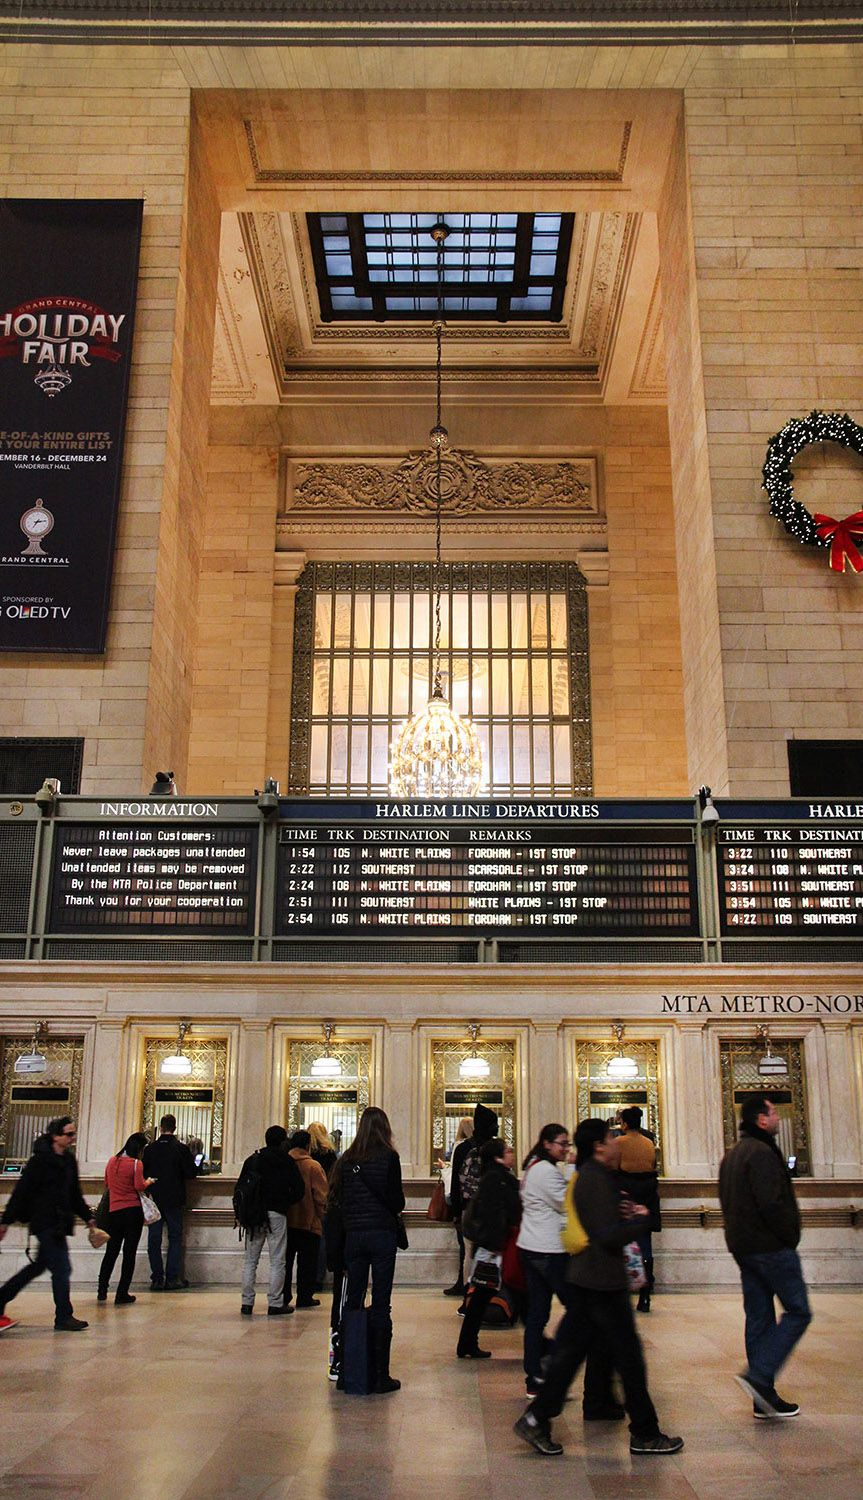 World Tourist Places: New York City  |Attractions Near Grand Central Station